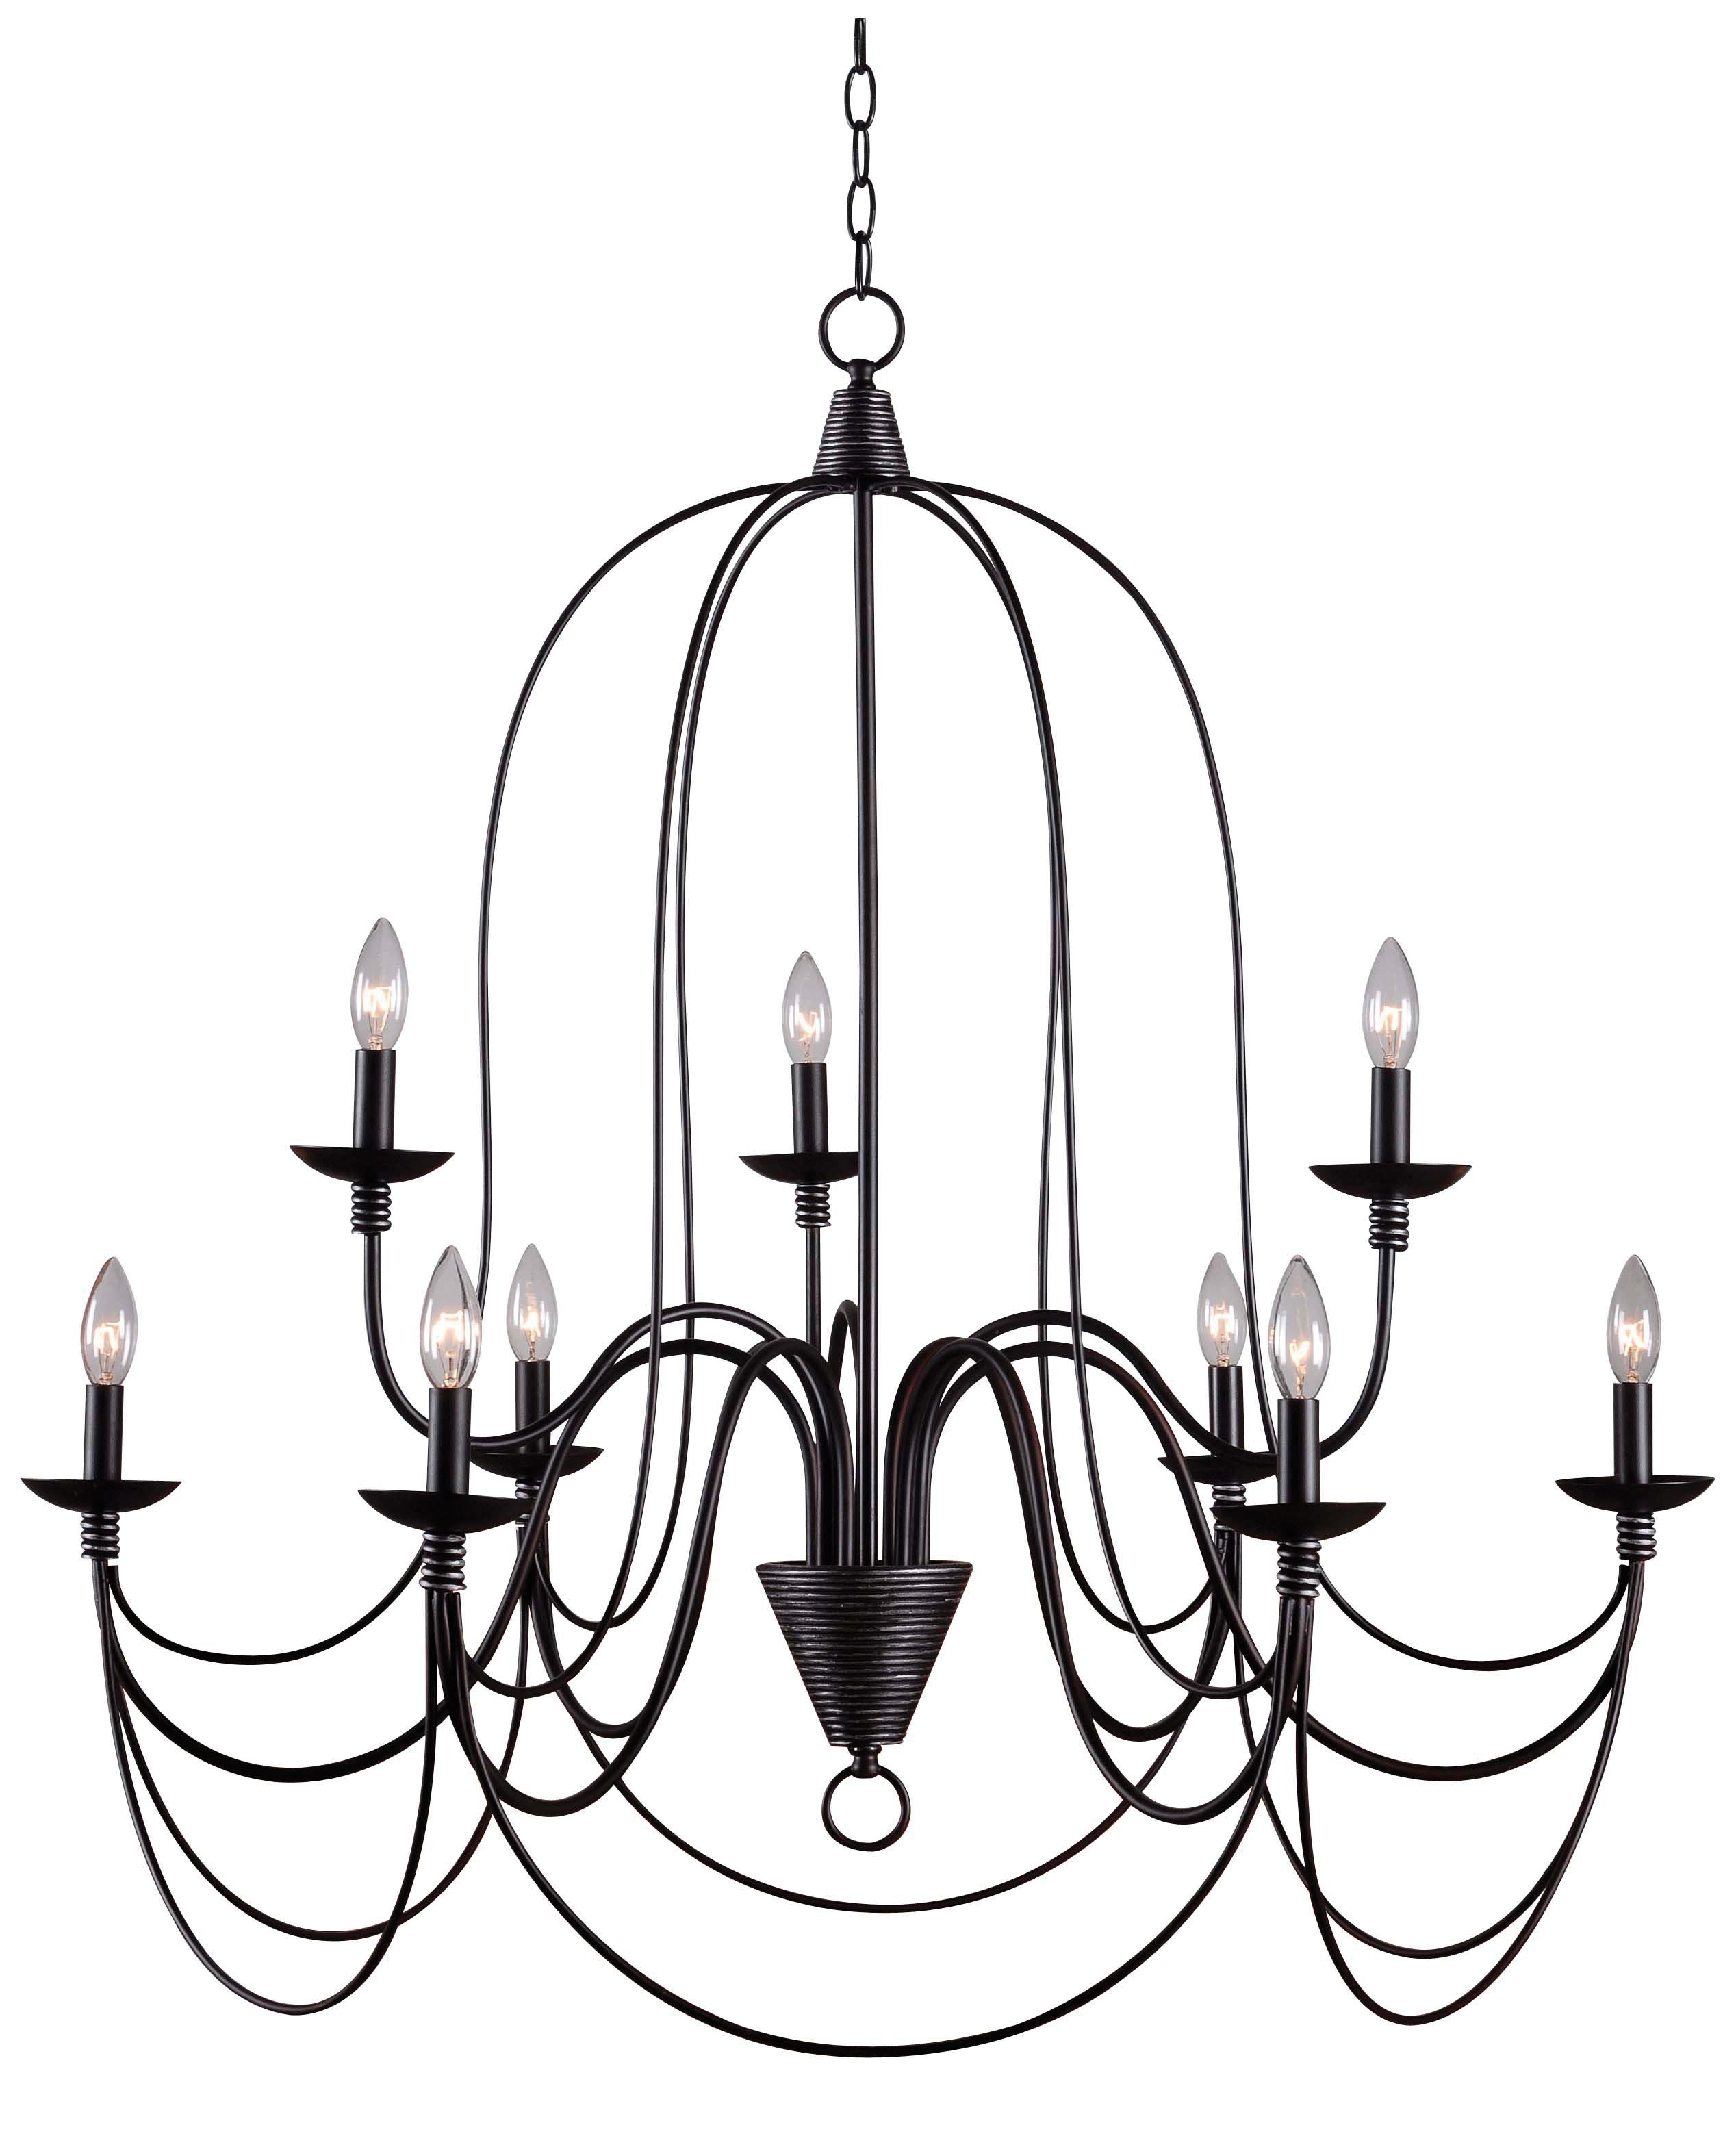 Giverny 9 Light Candle Style Chandeliers With Popular Kollman 9 Light Candle Style Chandelier (Gallery 4 of 20)